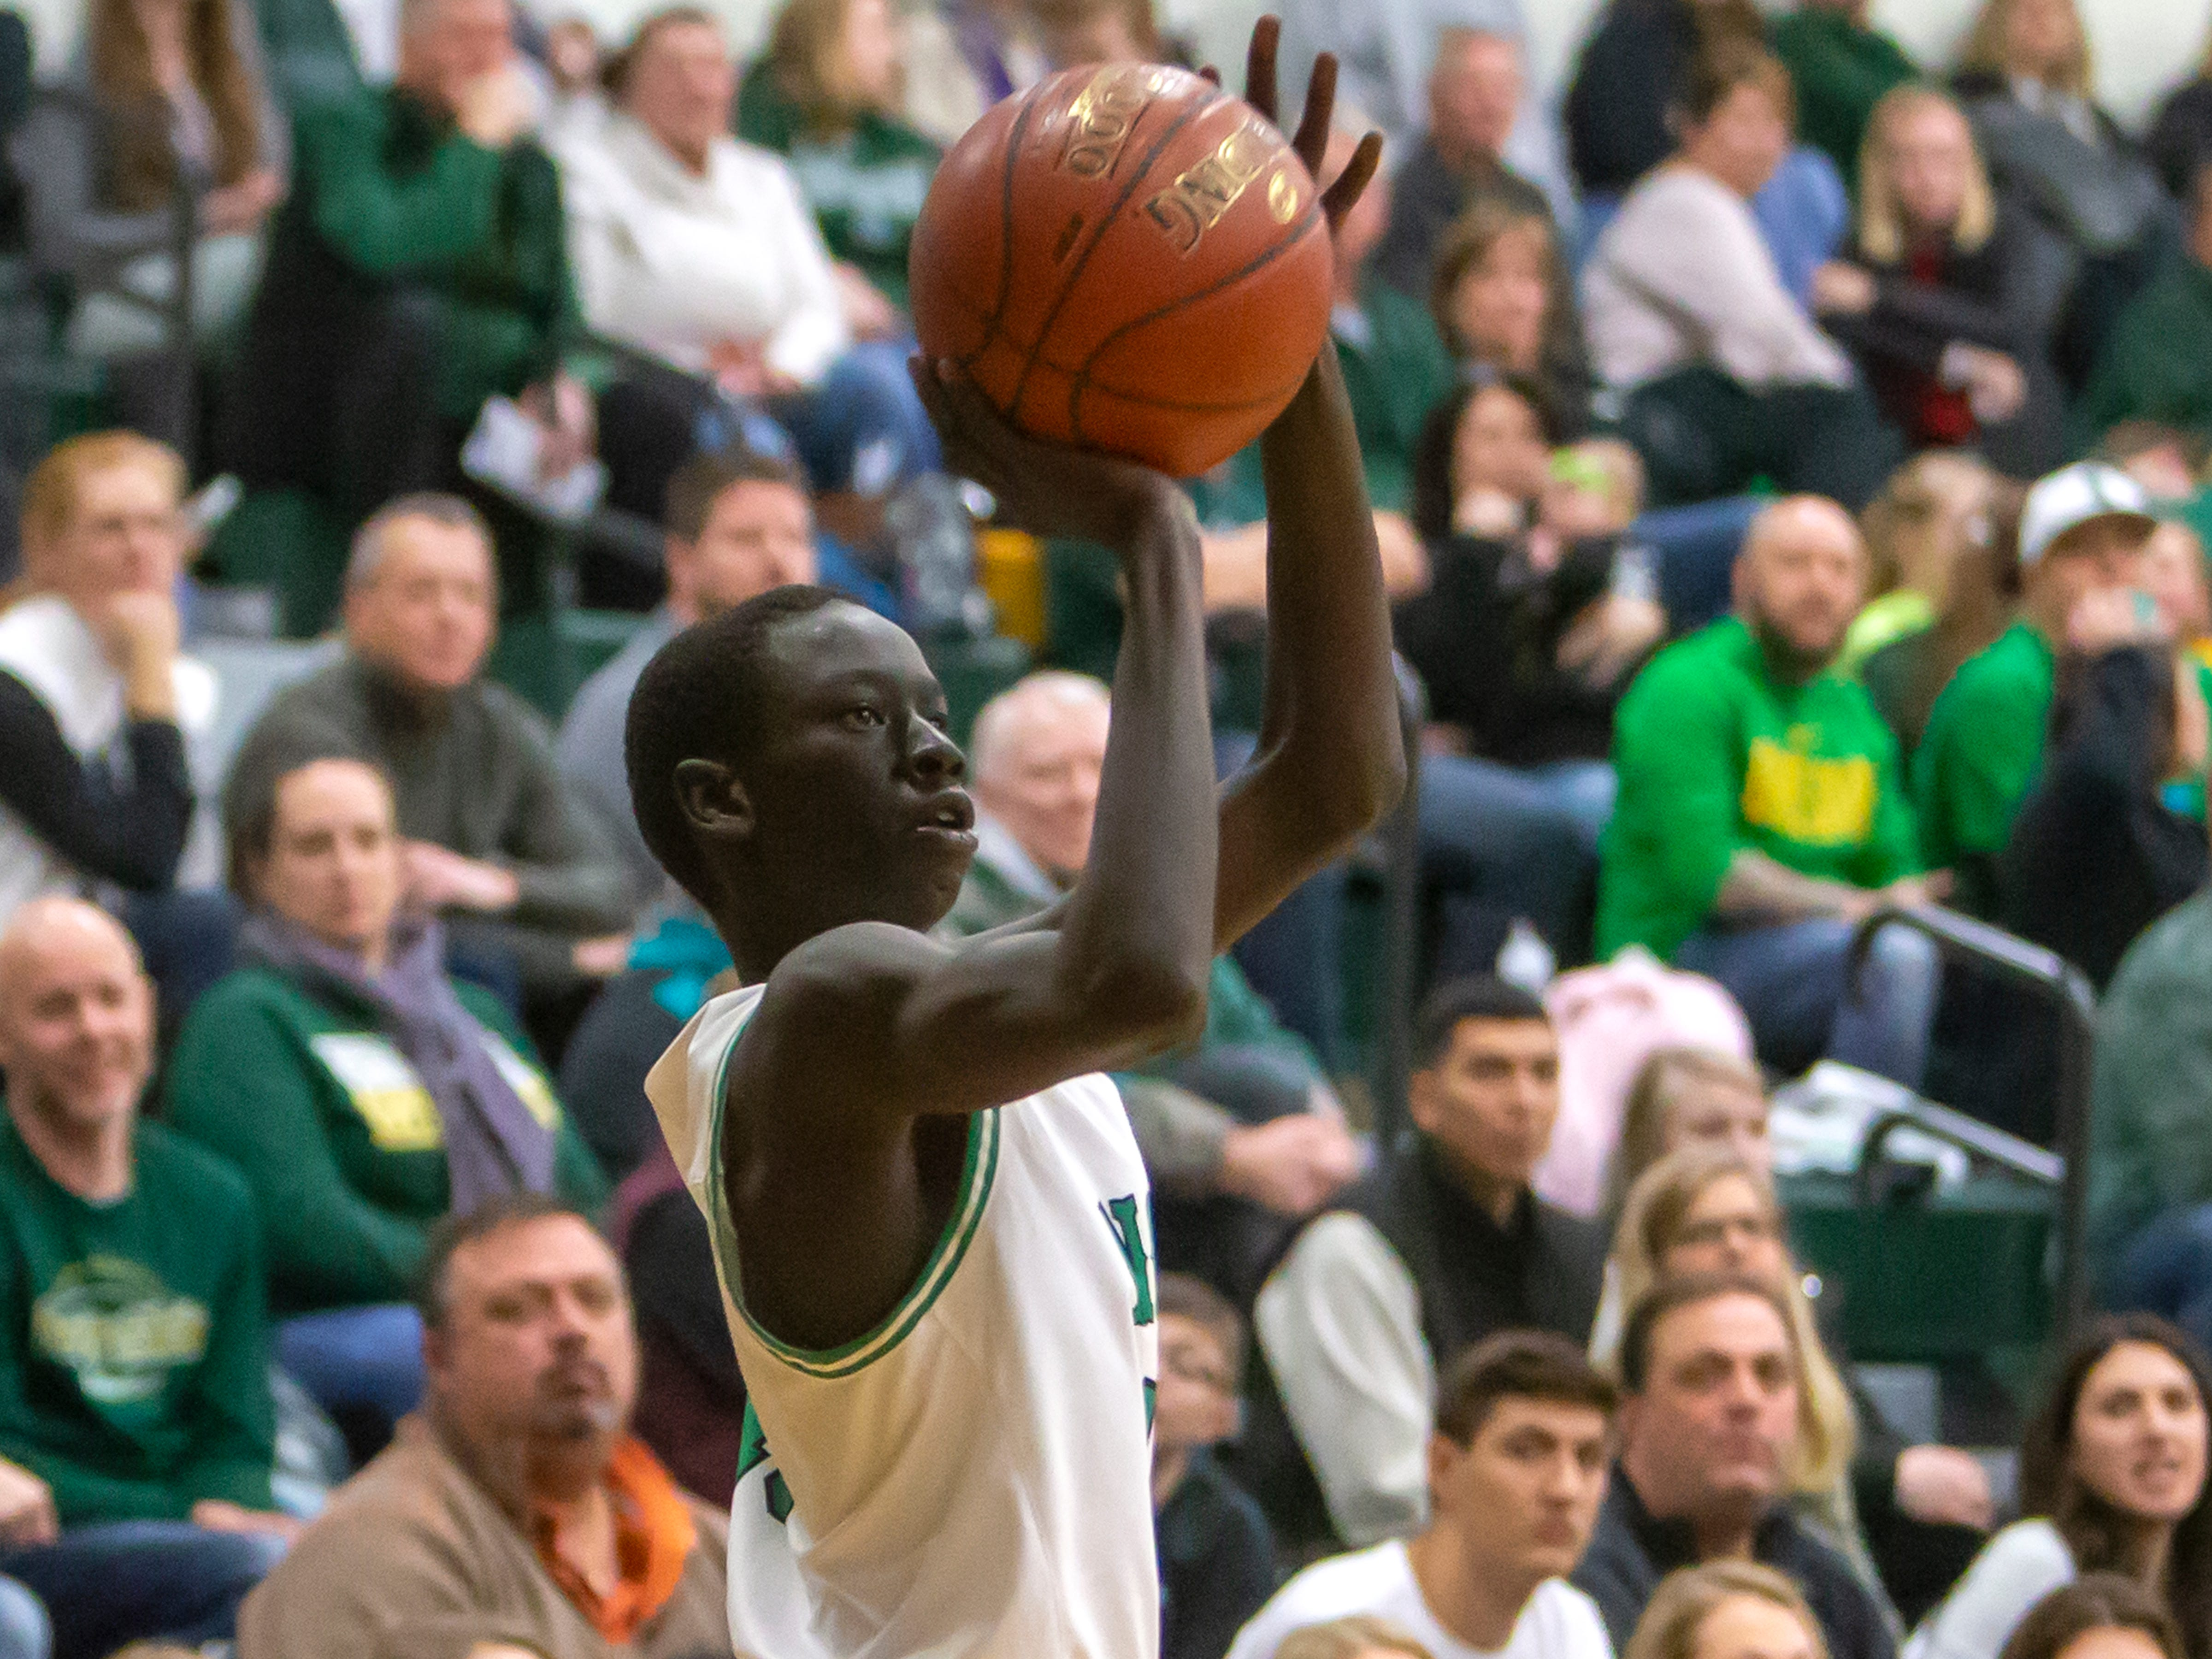 Oshkosh North's Garang Deng shoots during a game against the Wildcats at the Oshkosh North High School on Tuesday, Jan. 8, 2019.